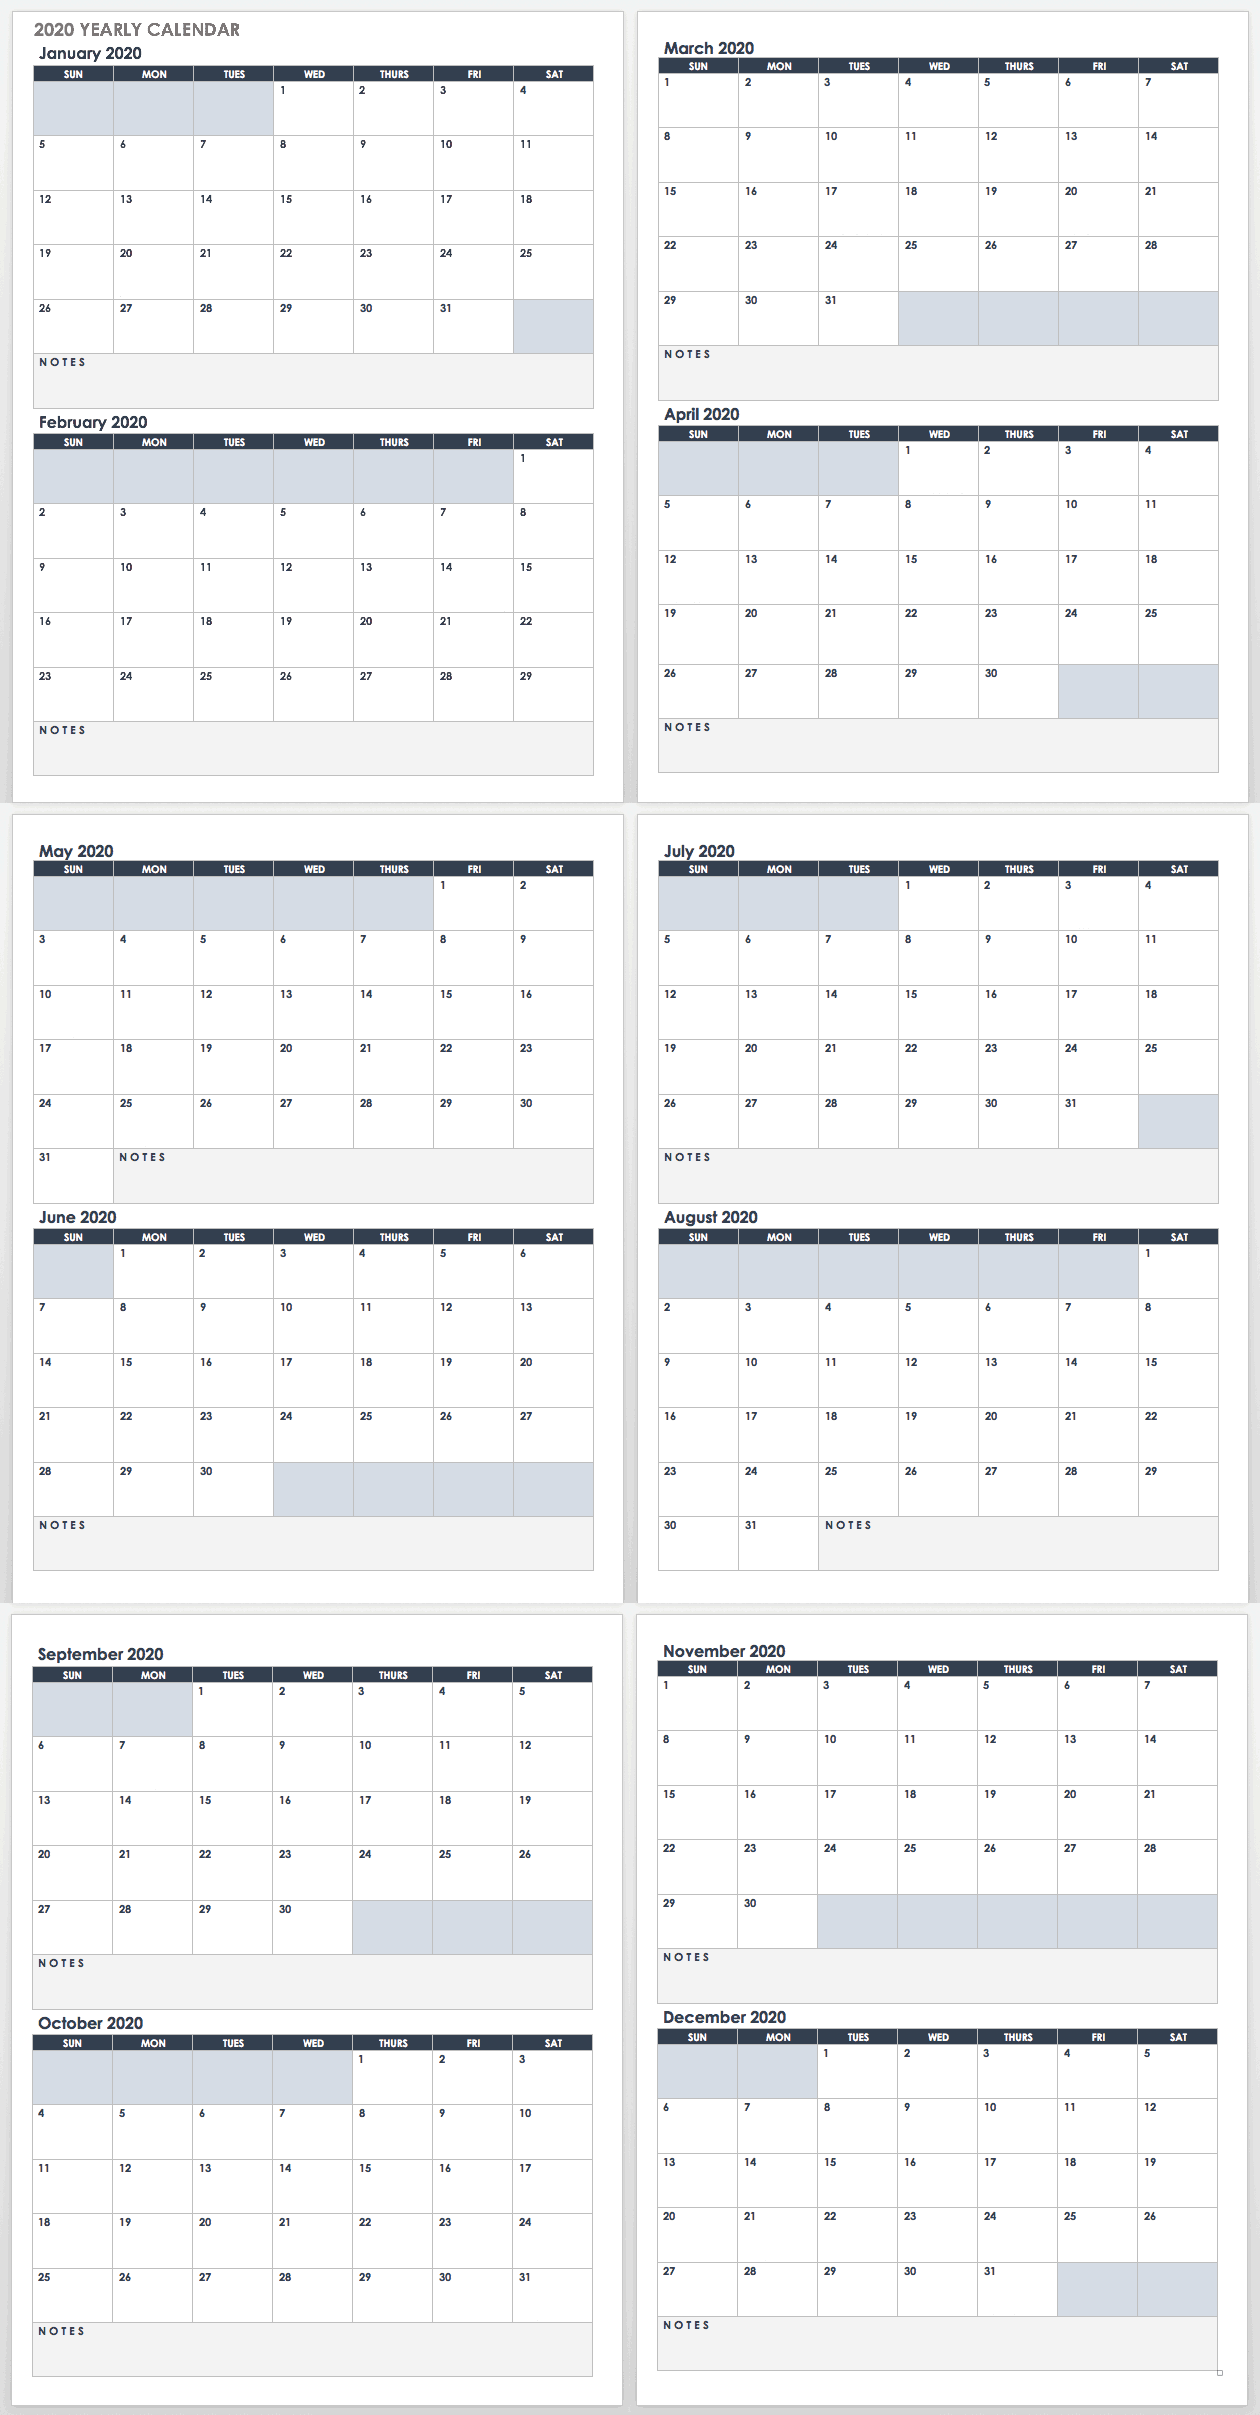 picture about Perpetual Calendar Template referred to as Free of charge perpetual calendar template down load absolutely free excel